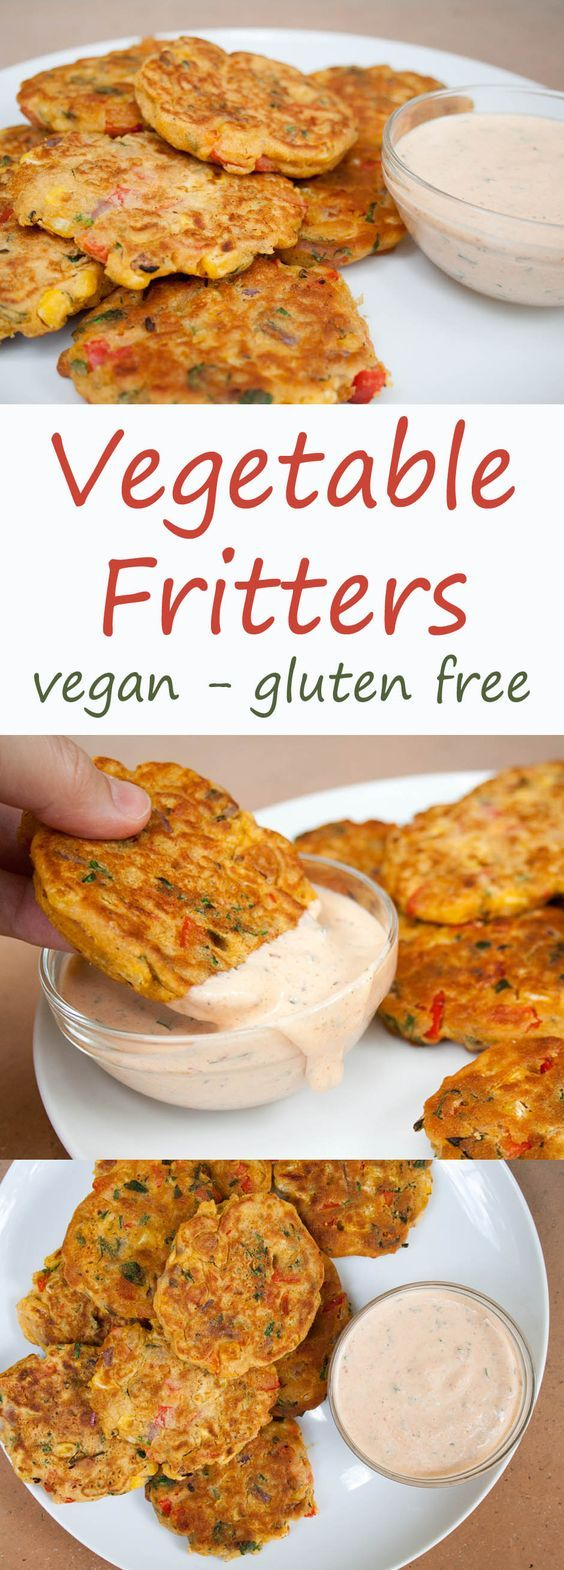 Vegetable Fritters - Create Mindfully - http://createmindfully.com/vegetable-fritters/